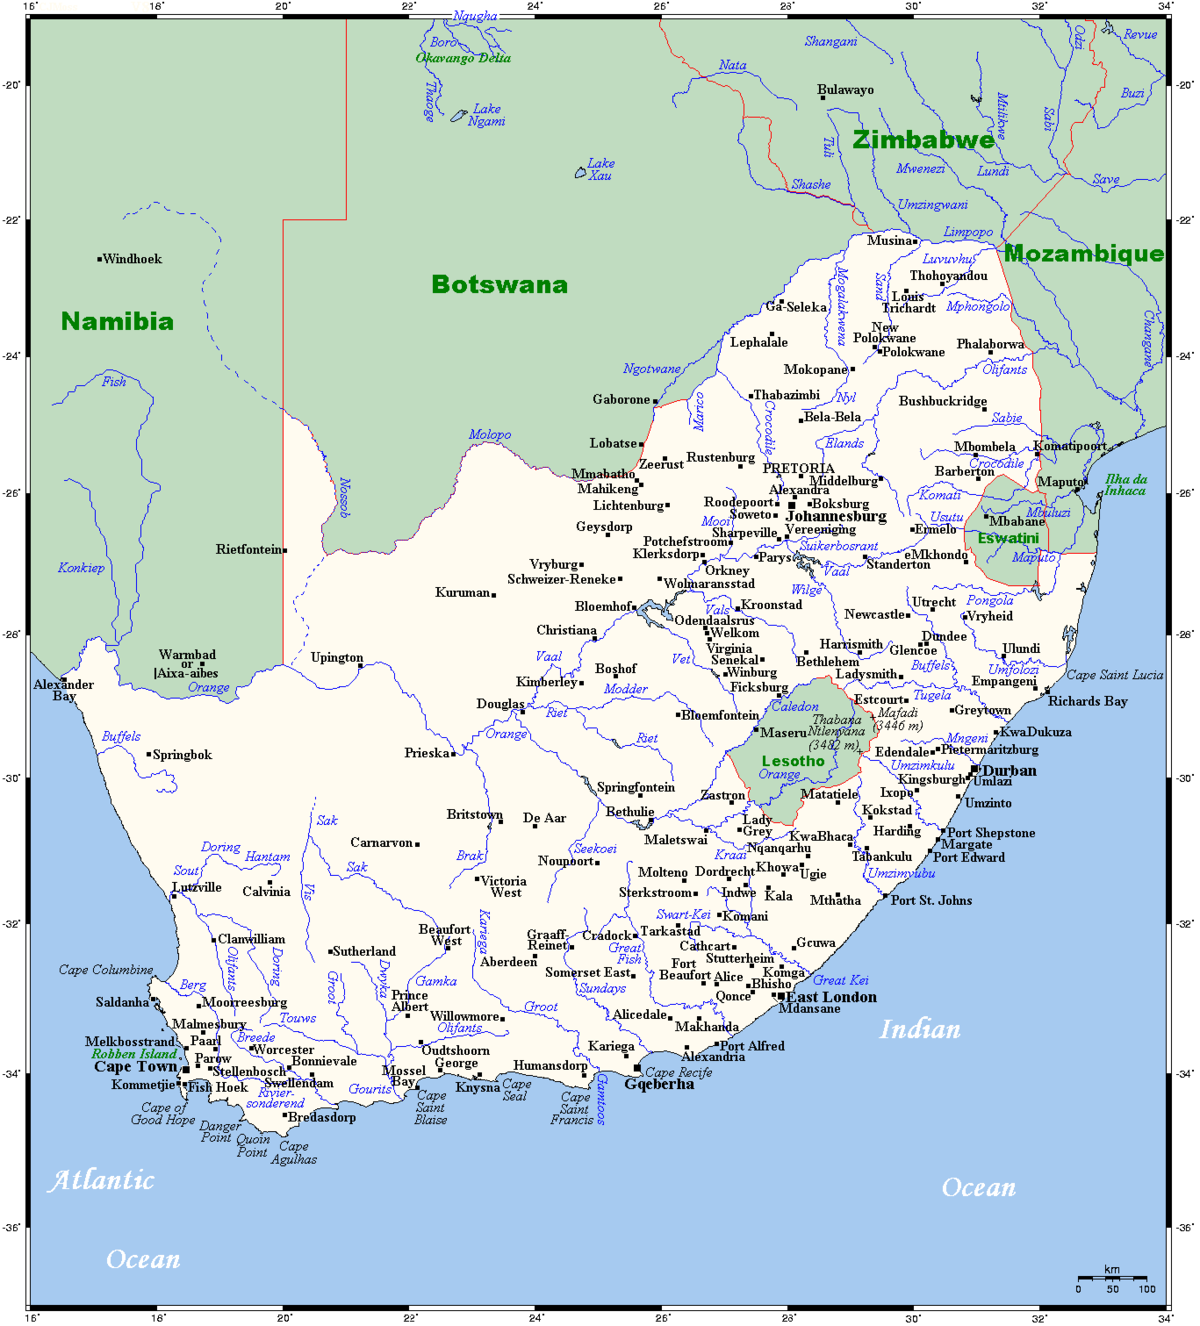 List Of Rivers Of South Africa Wikipedia - Important rivers in africa